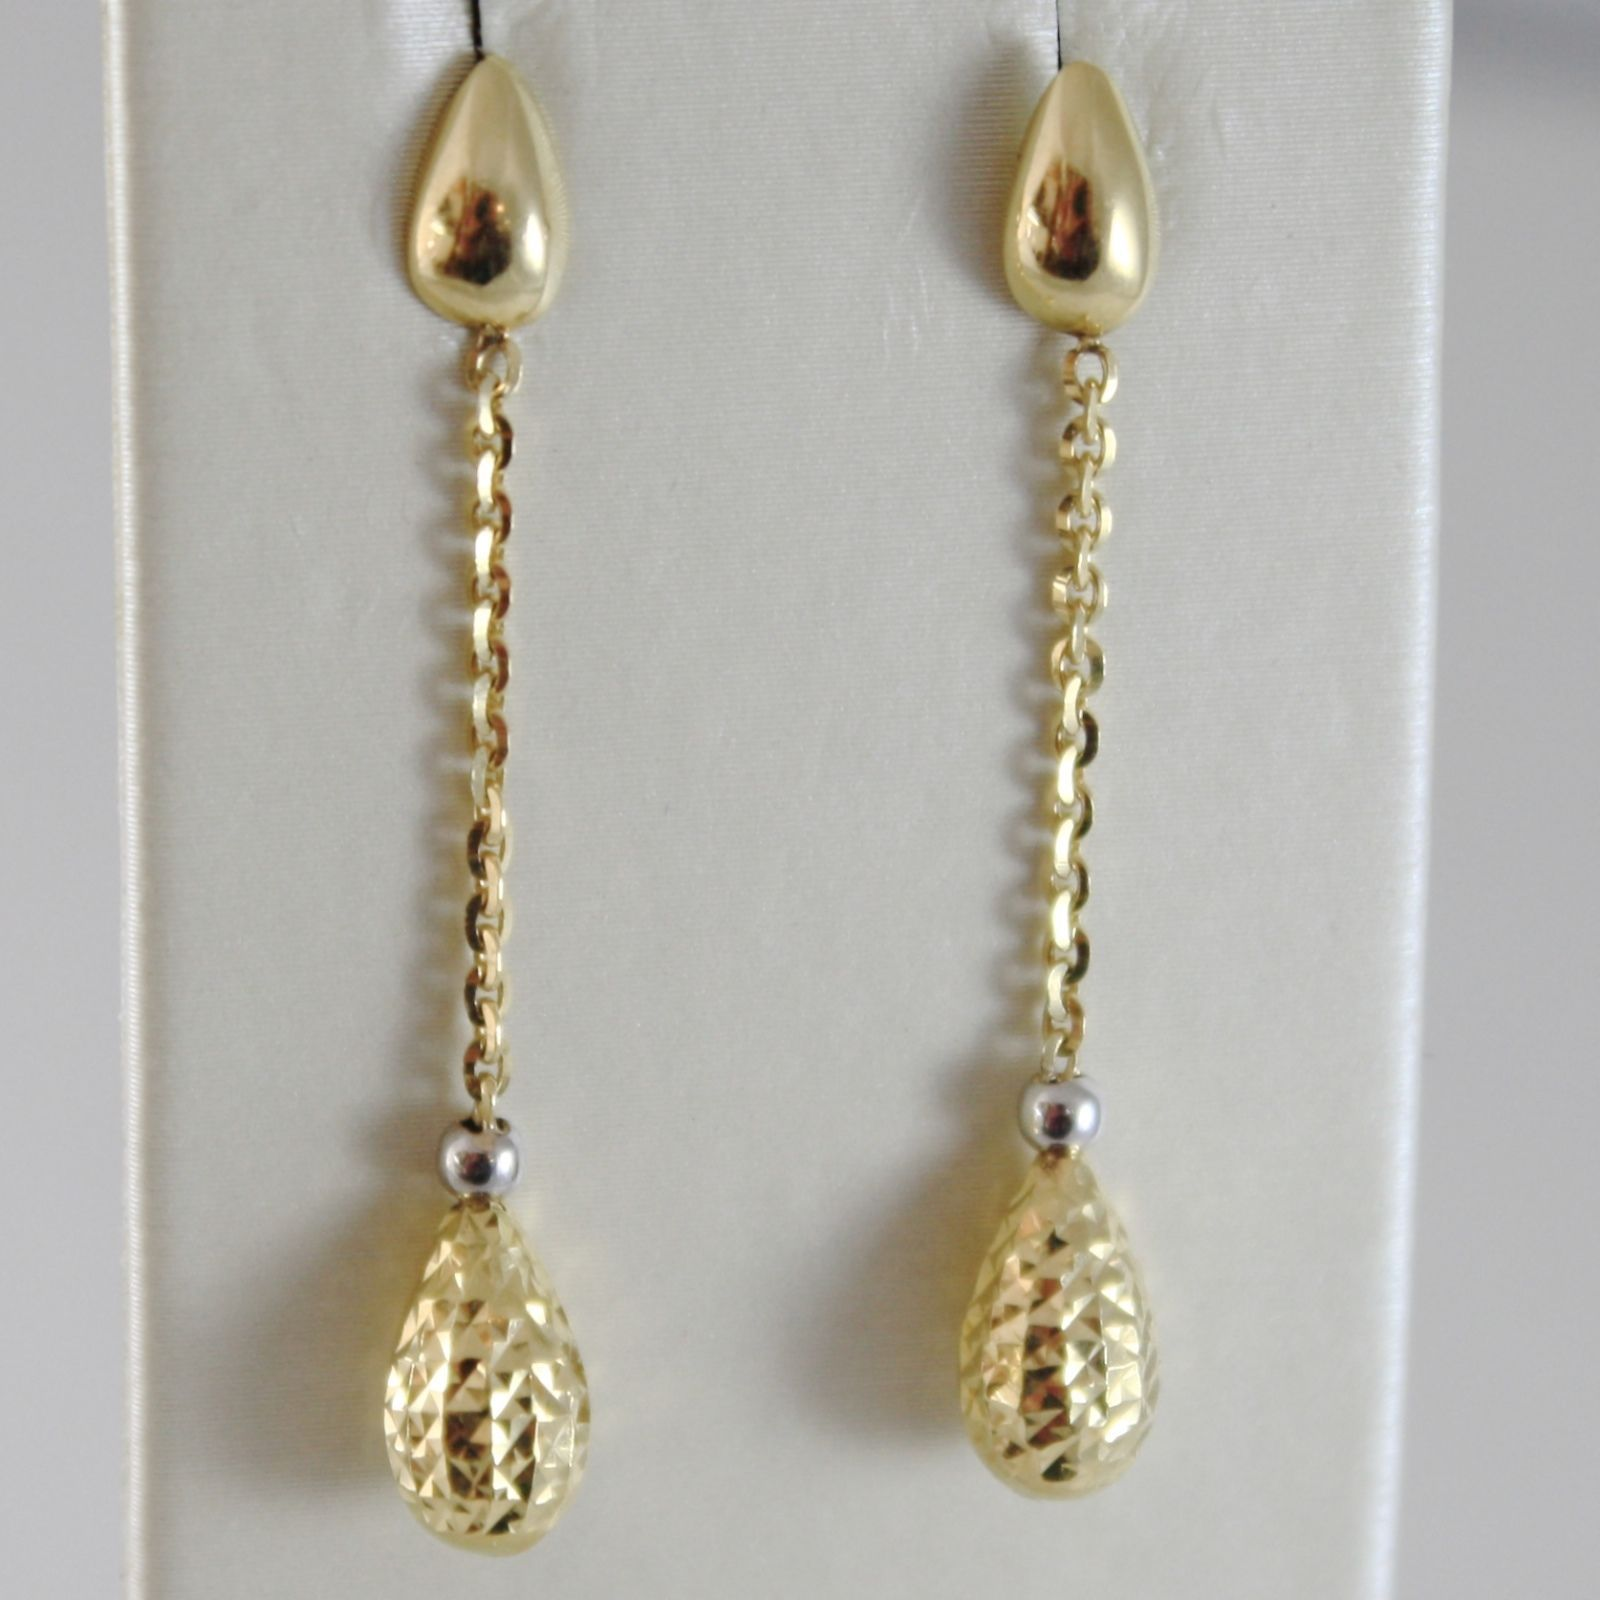 YELLOW GOLD EARRINGS 750 18K HANGING 3.8 CM DROP WORKED, MADE IN ITALY